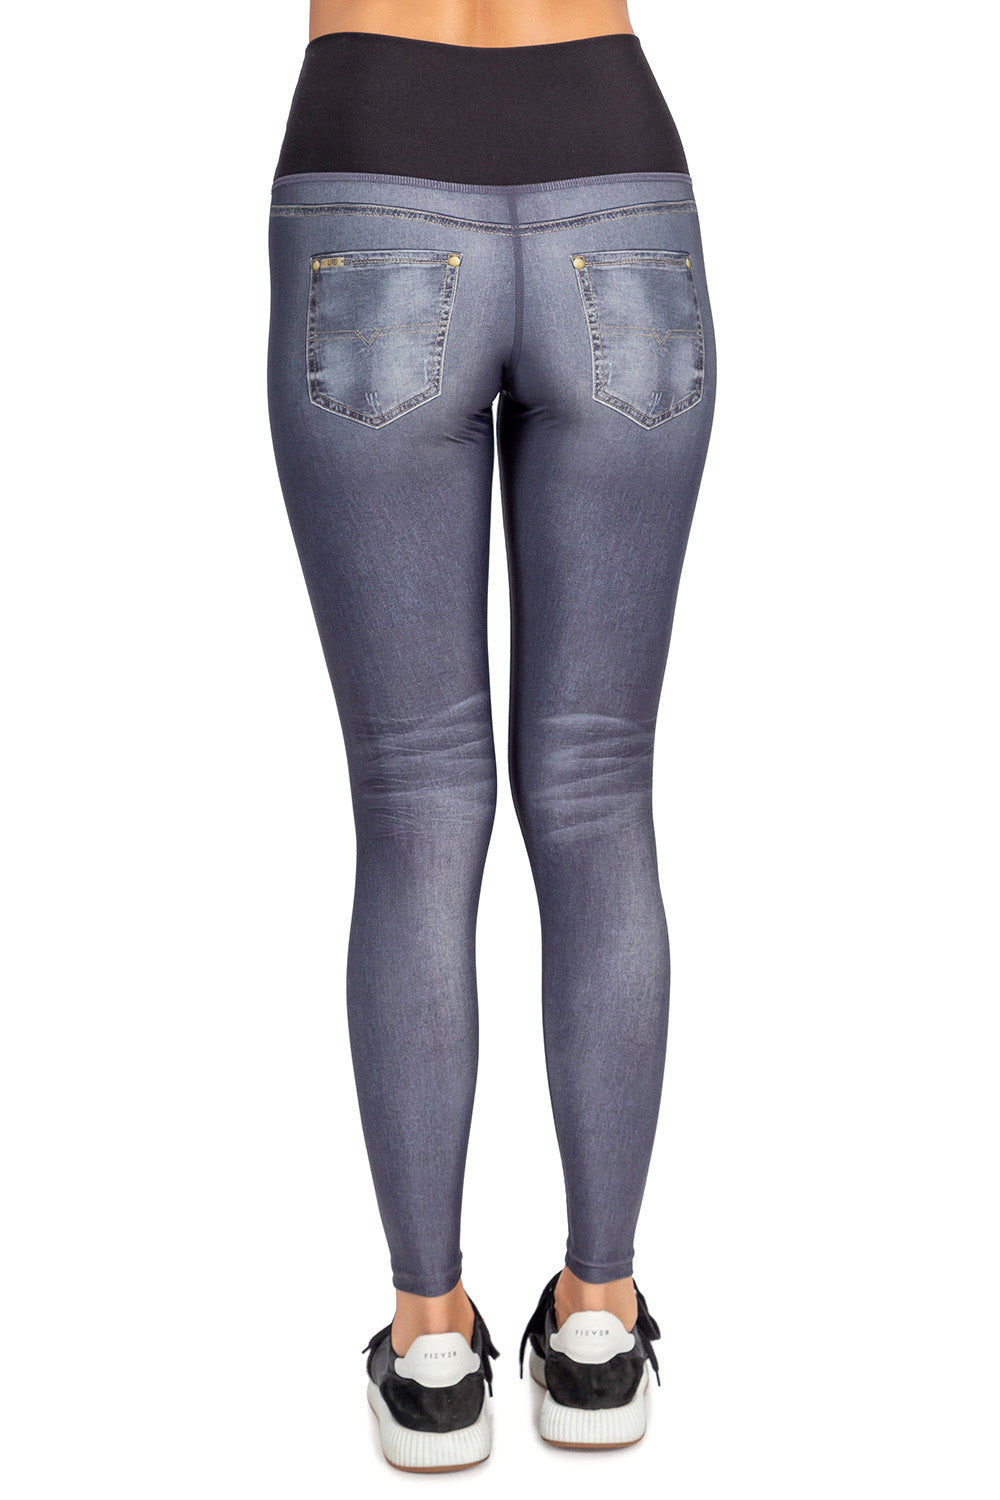 Discover Reversible Denim Tight